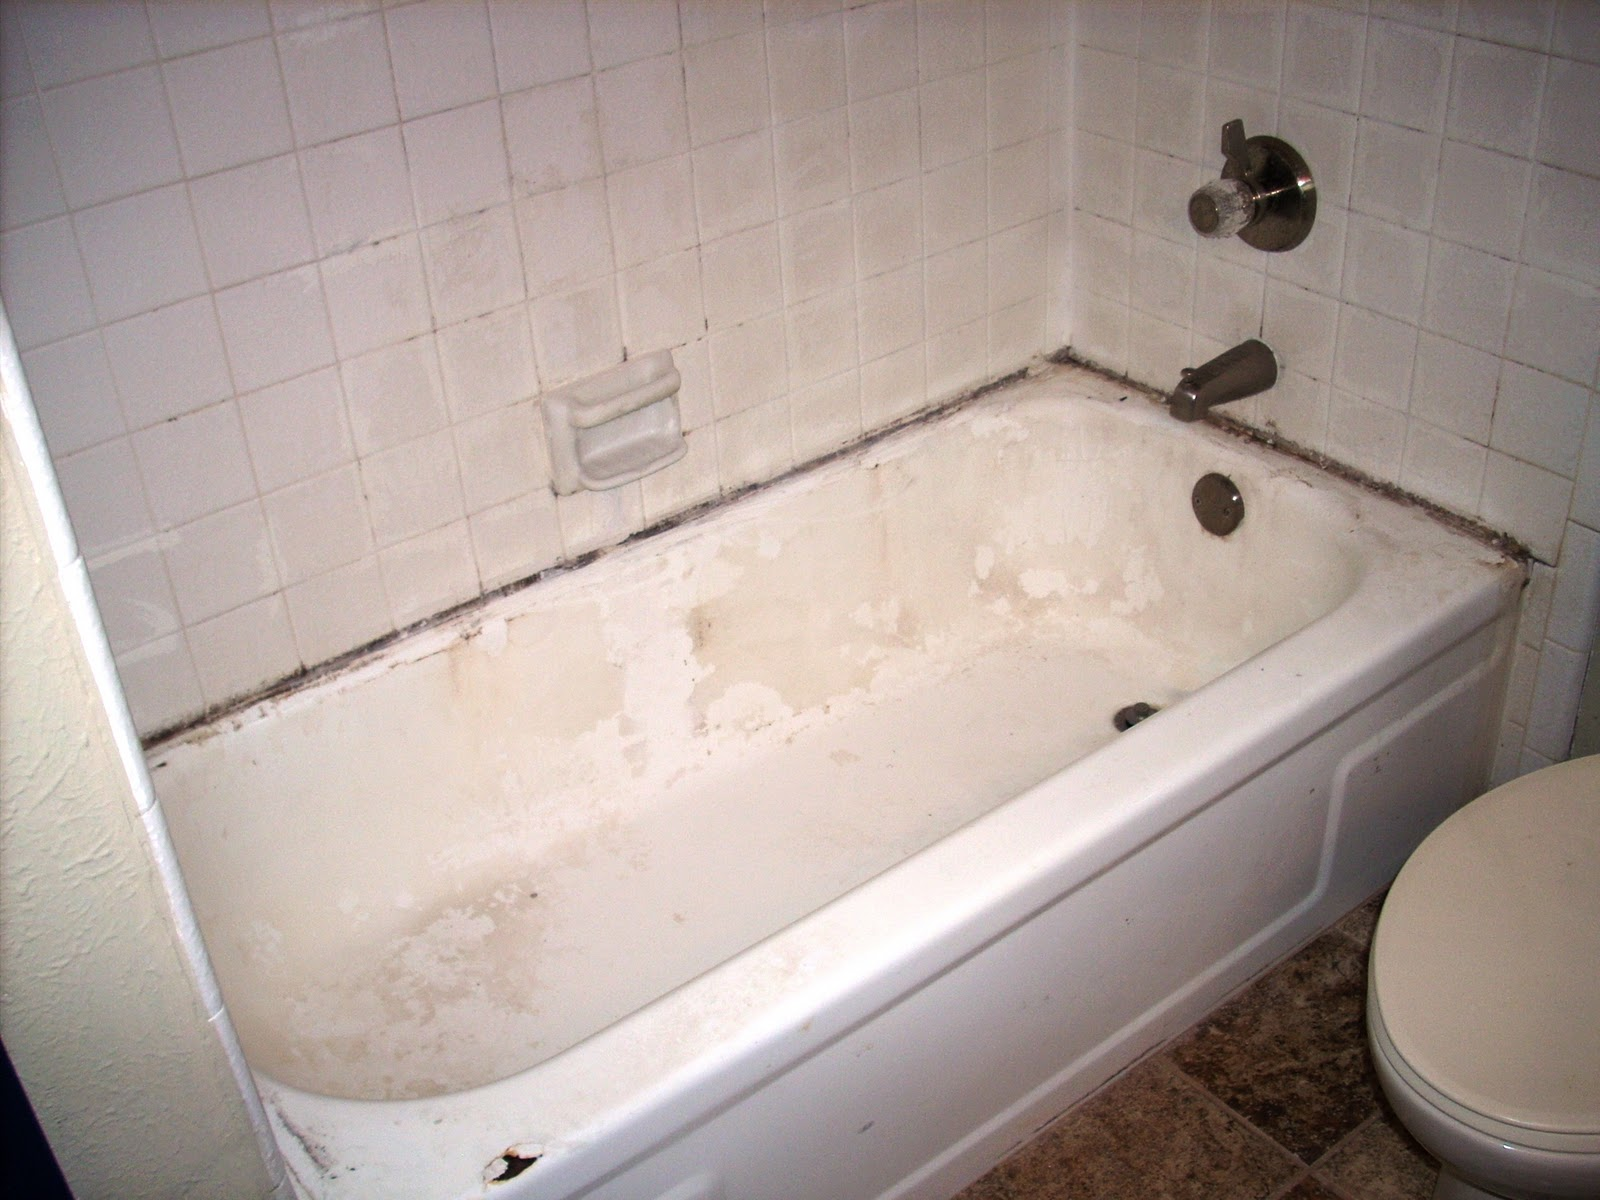 Home improvement bc renovations repairs view our home - Renovating a bathroom what to do first ...